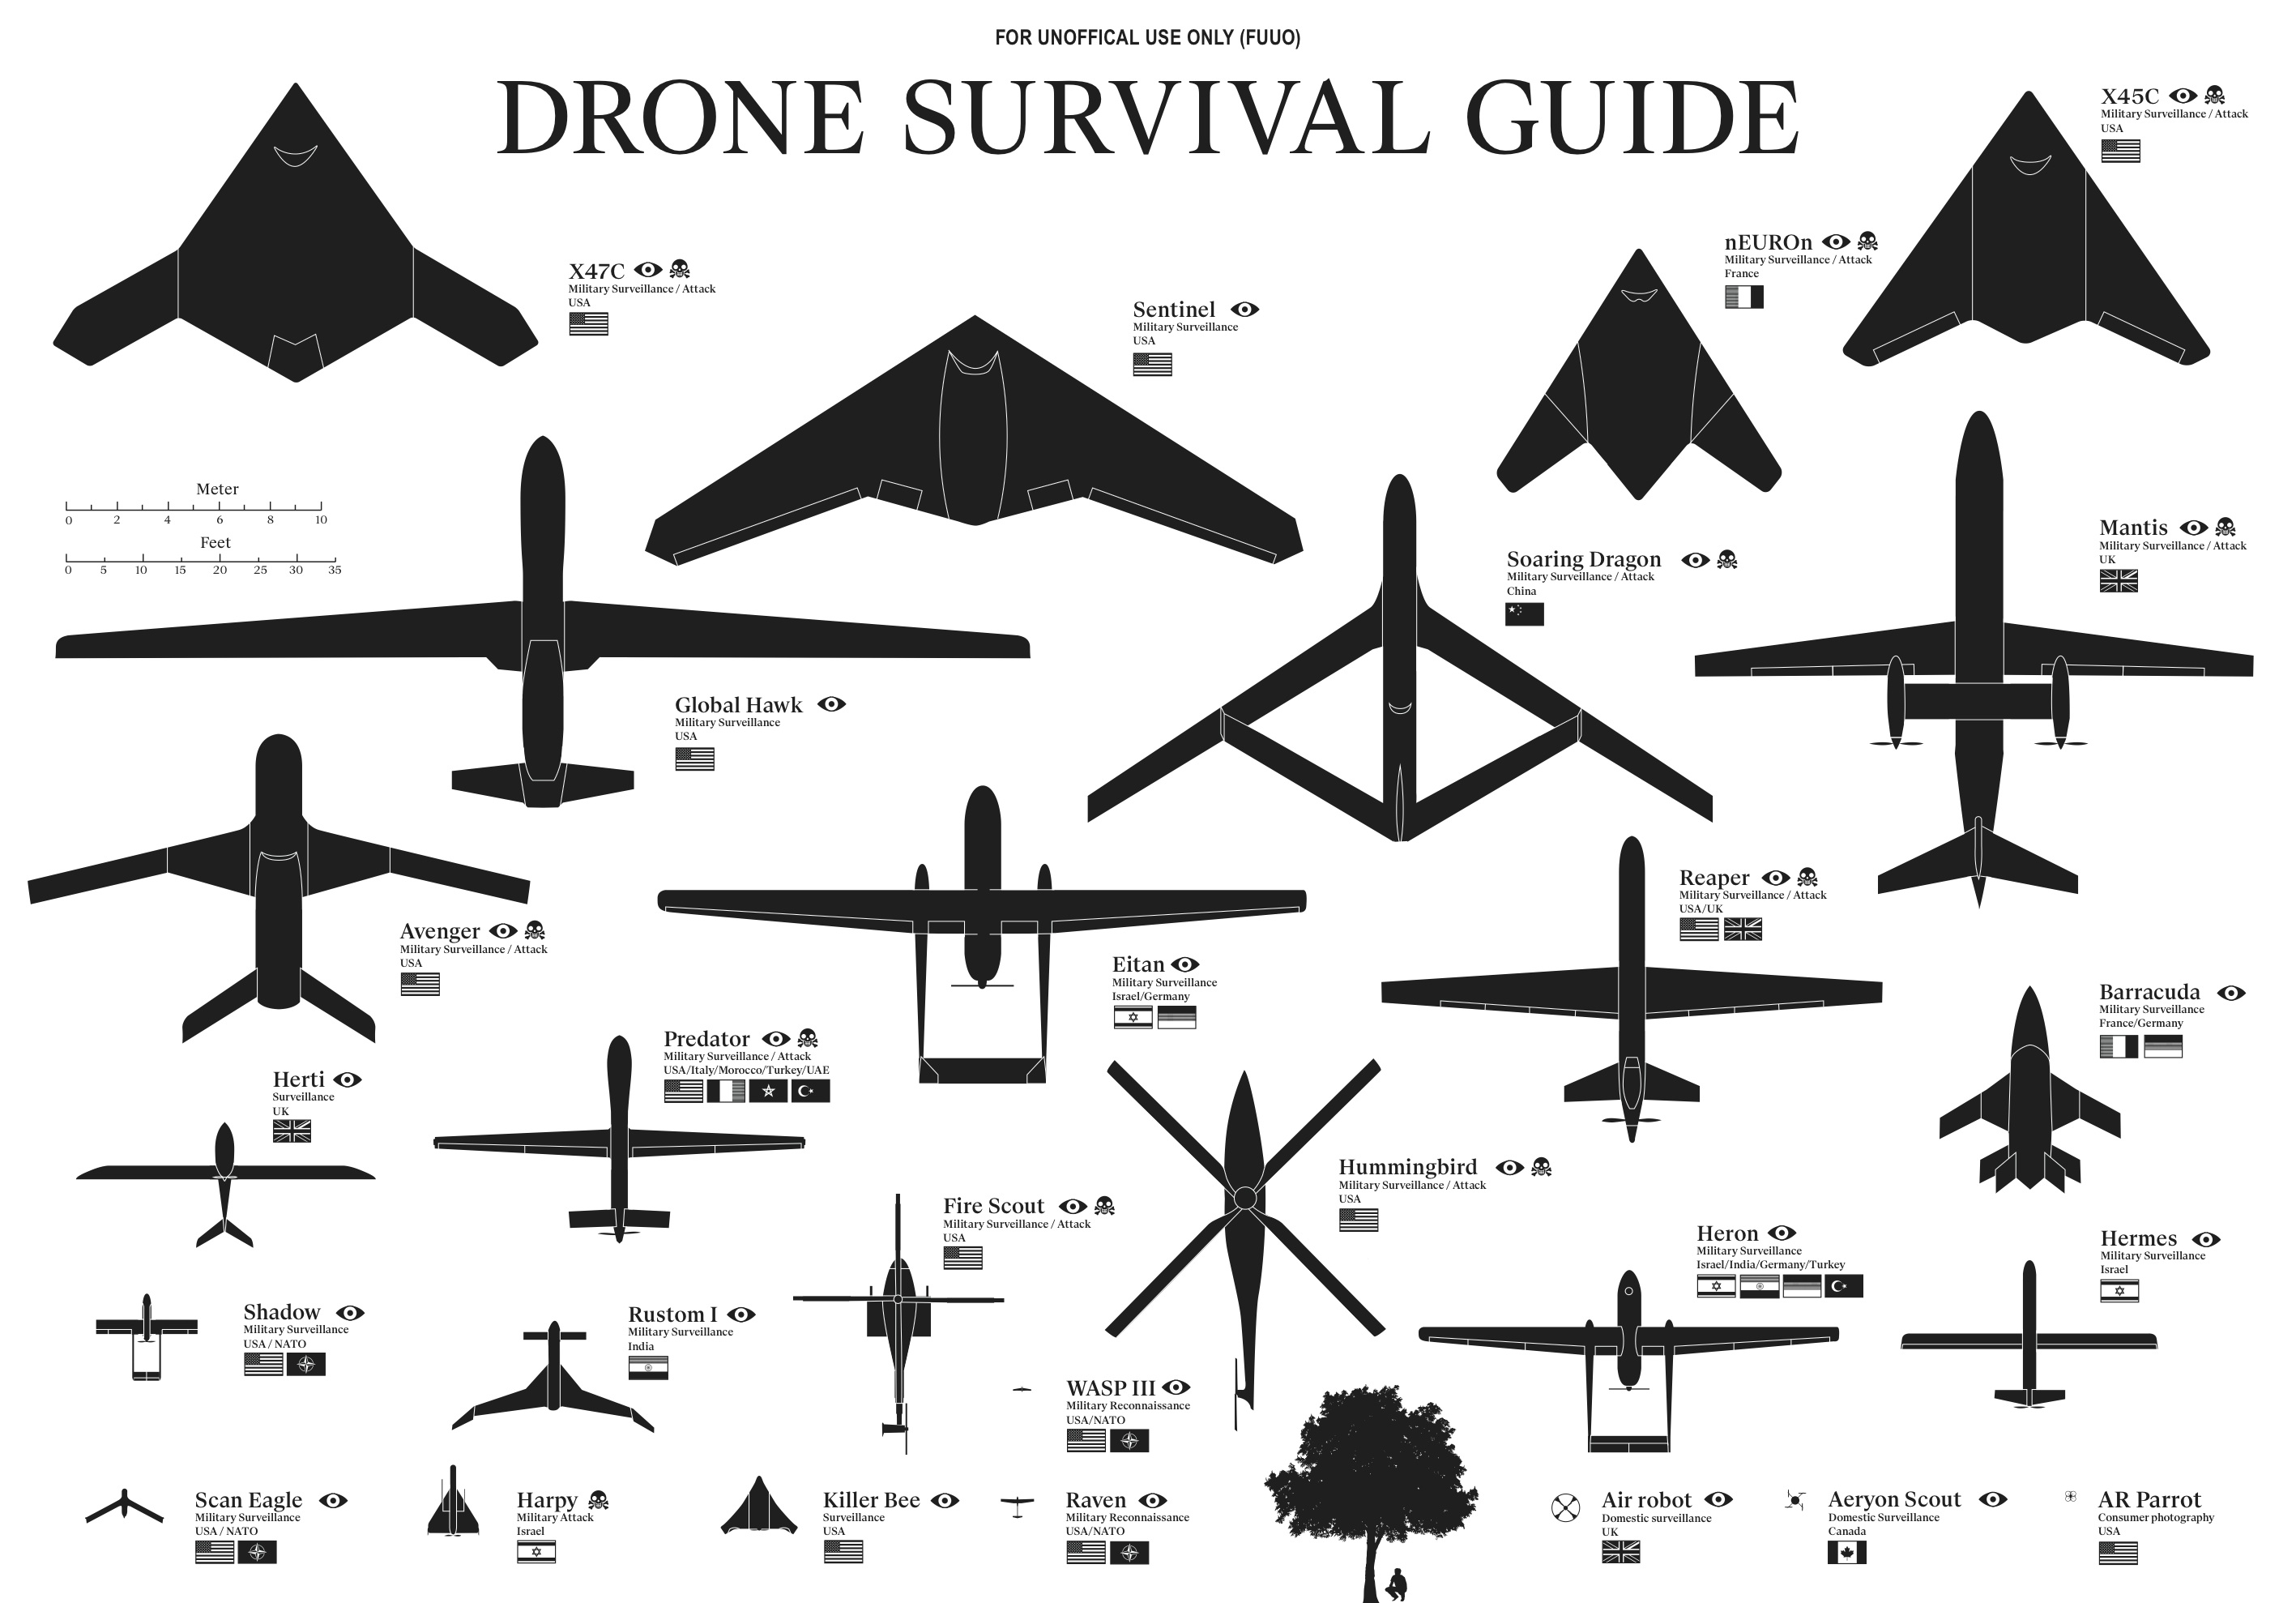 ww2 remote control airplanes with Drone Survival Guide on These Awesome Rc Airplanes Are So Huge That You Can Fly 1644851216 in addition Diagram different types of drones as well Watch together with Rc Army Trucks For Sale besides Details.